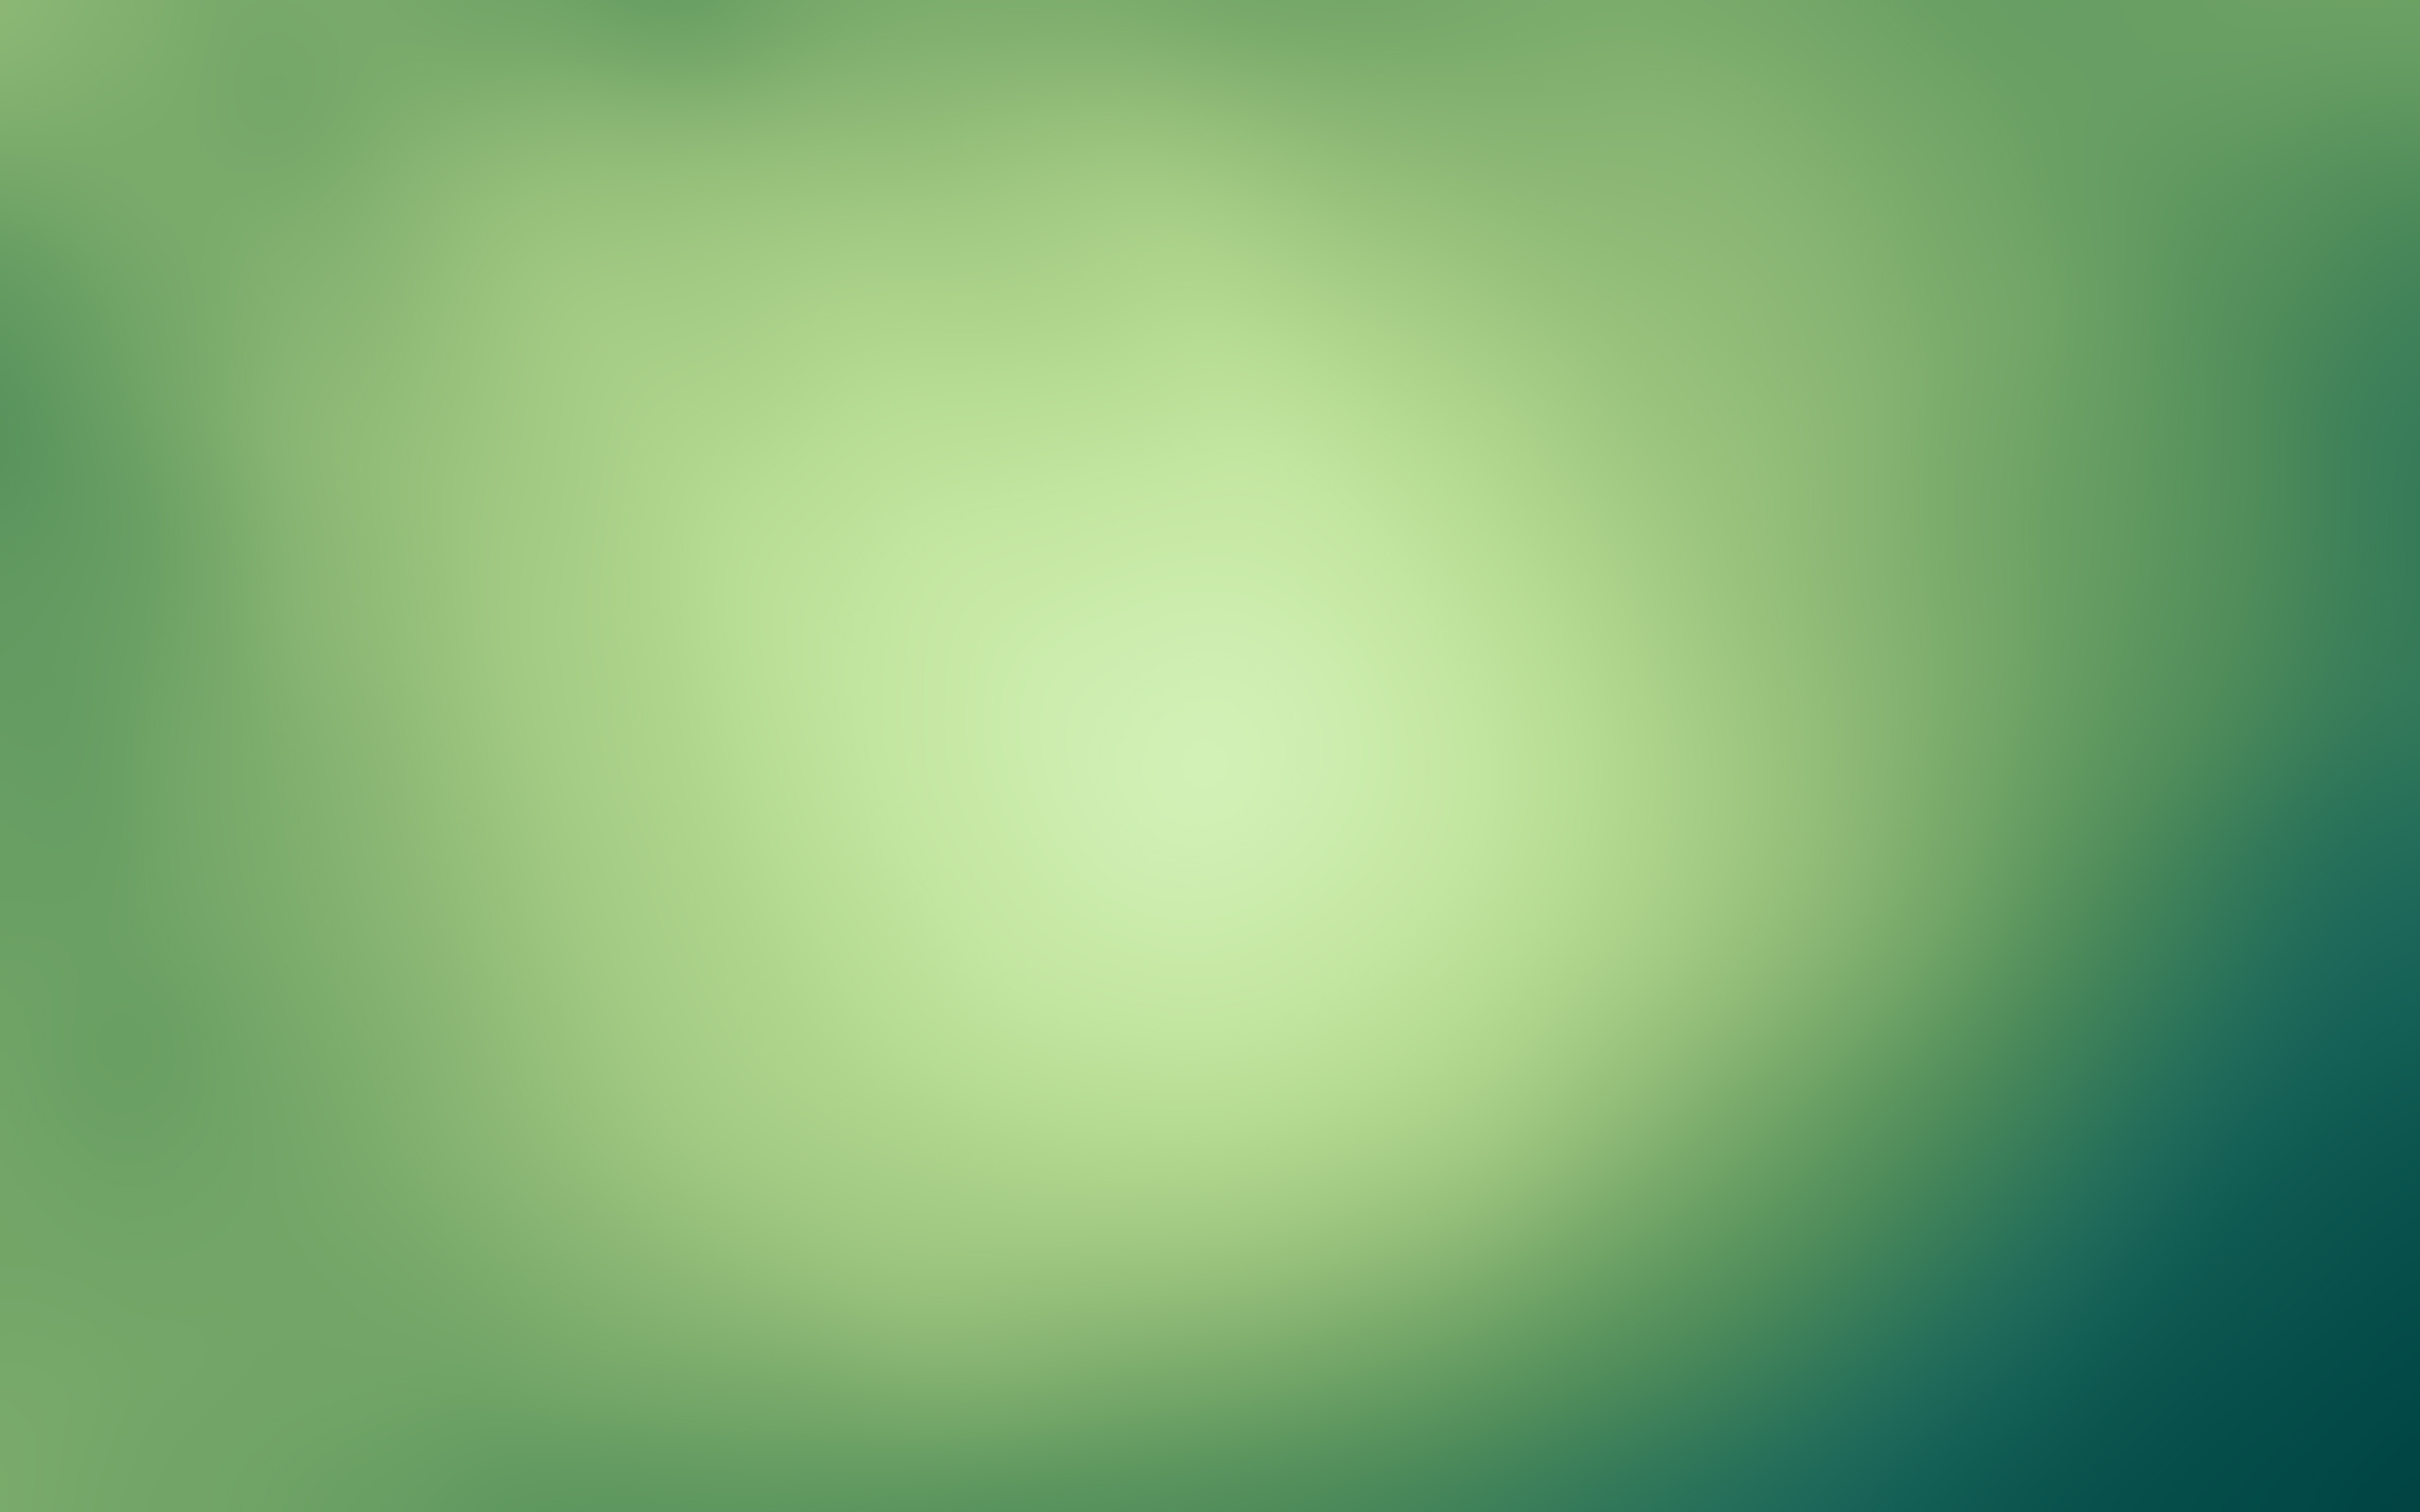 Green Colorful Green Abstract Wallpaper Downloads Wallpaper